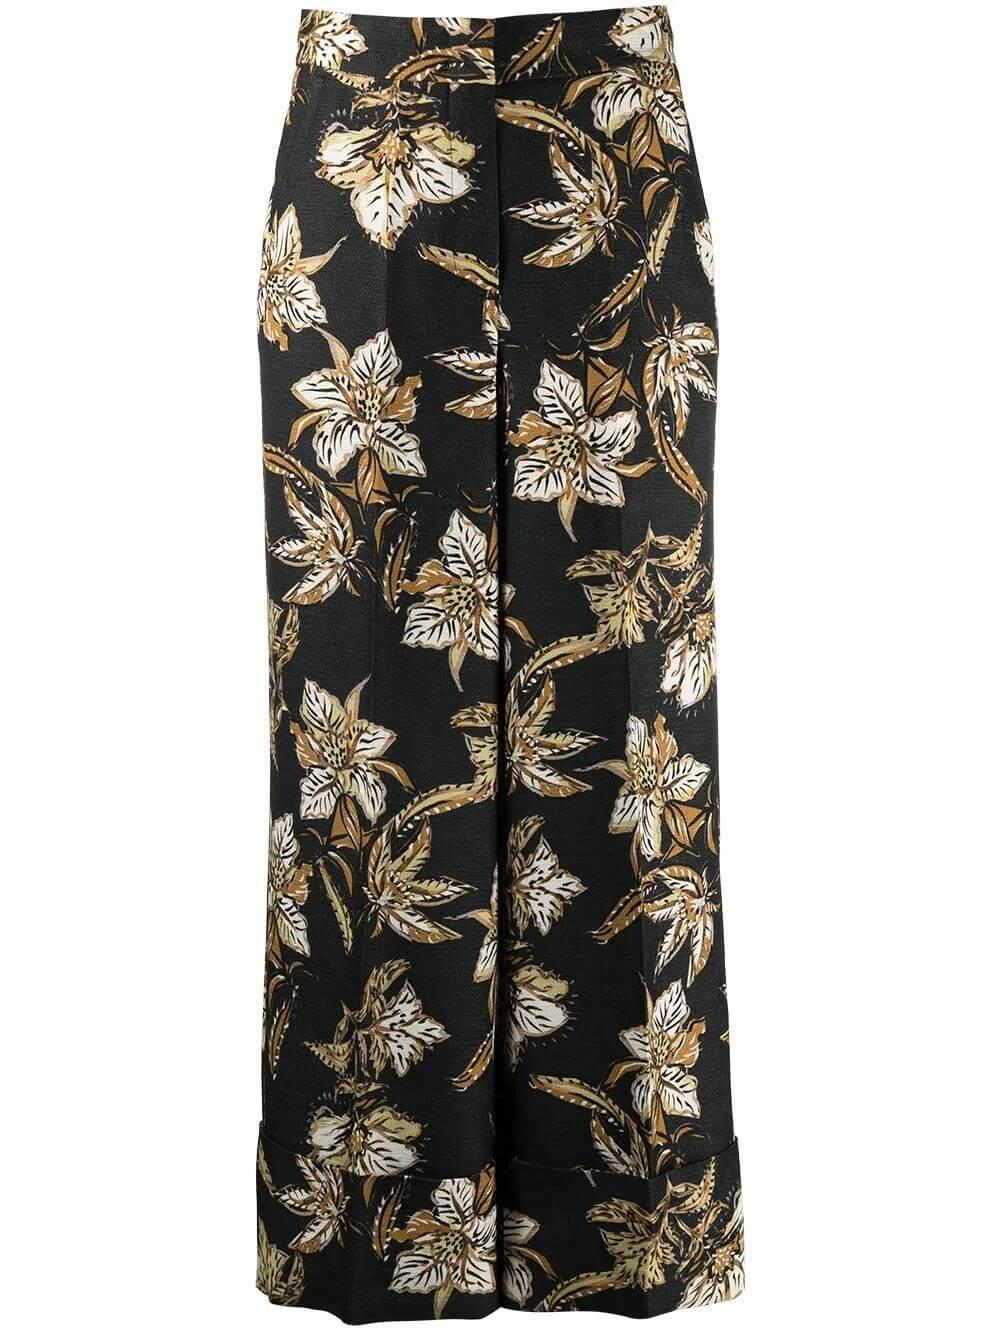 Structured Floral Pant Item # 248403